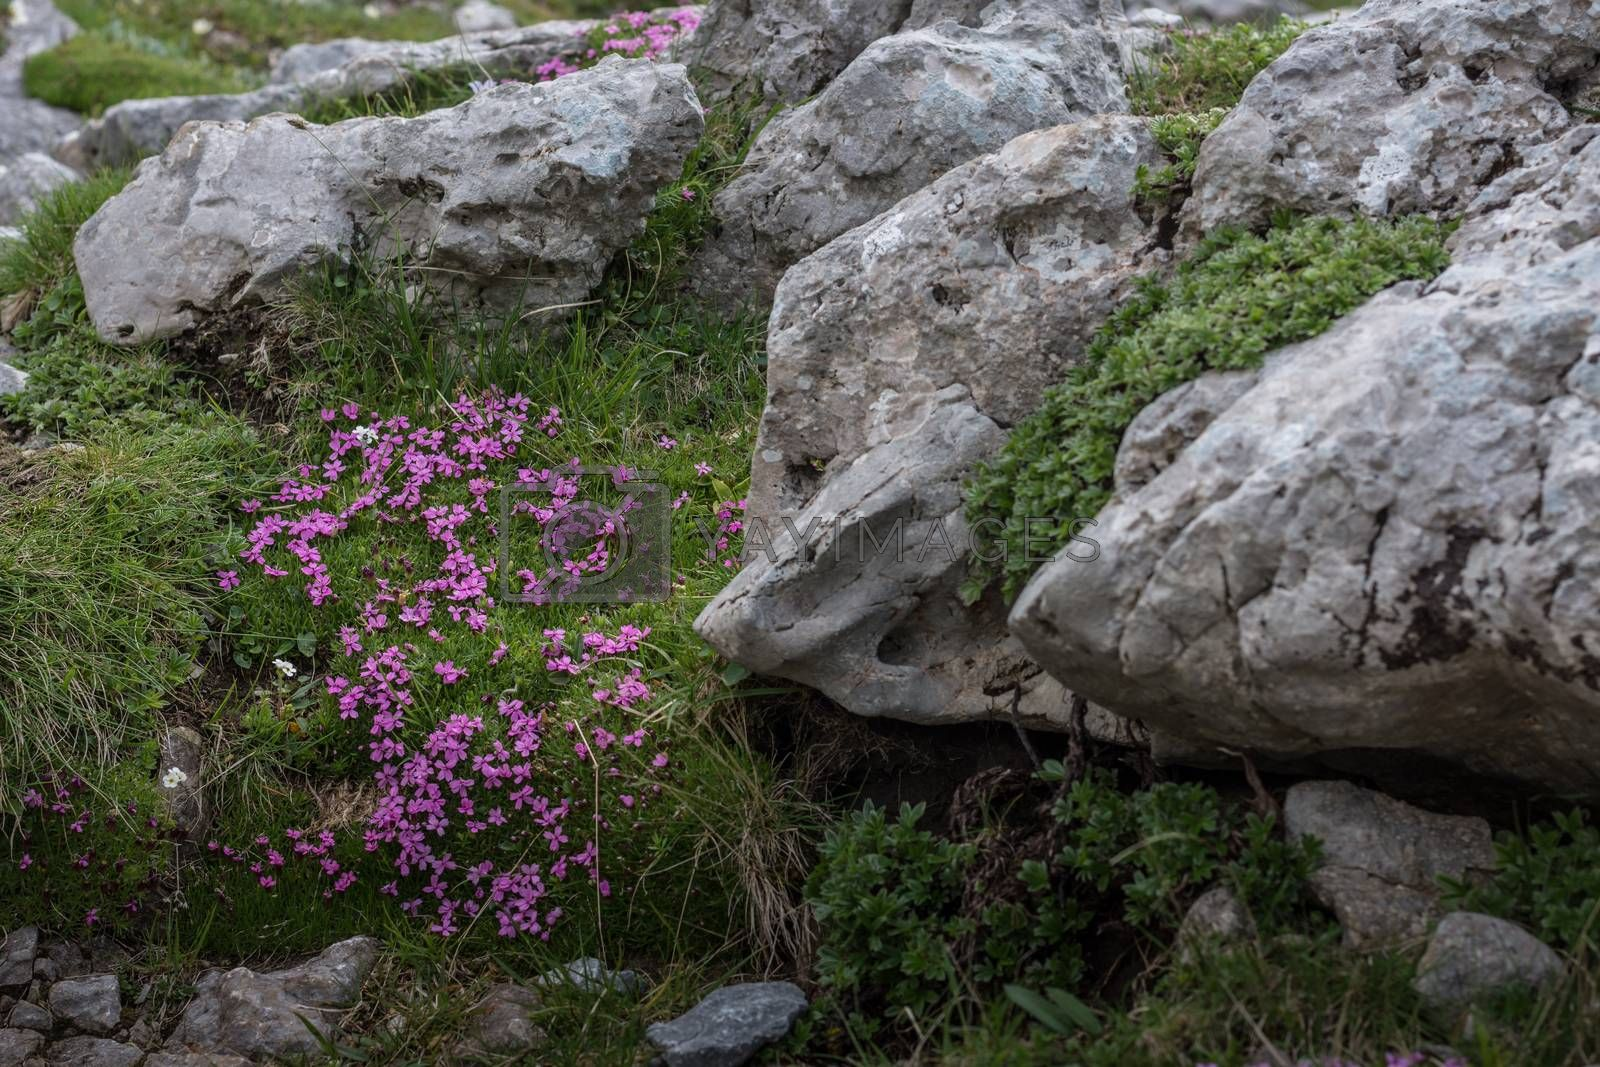 purple flowers on rocks in the mountains while hiking